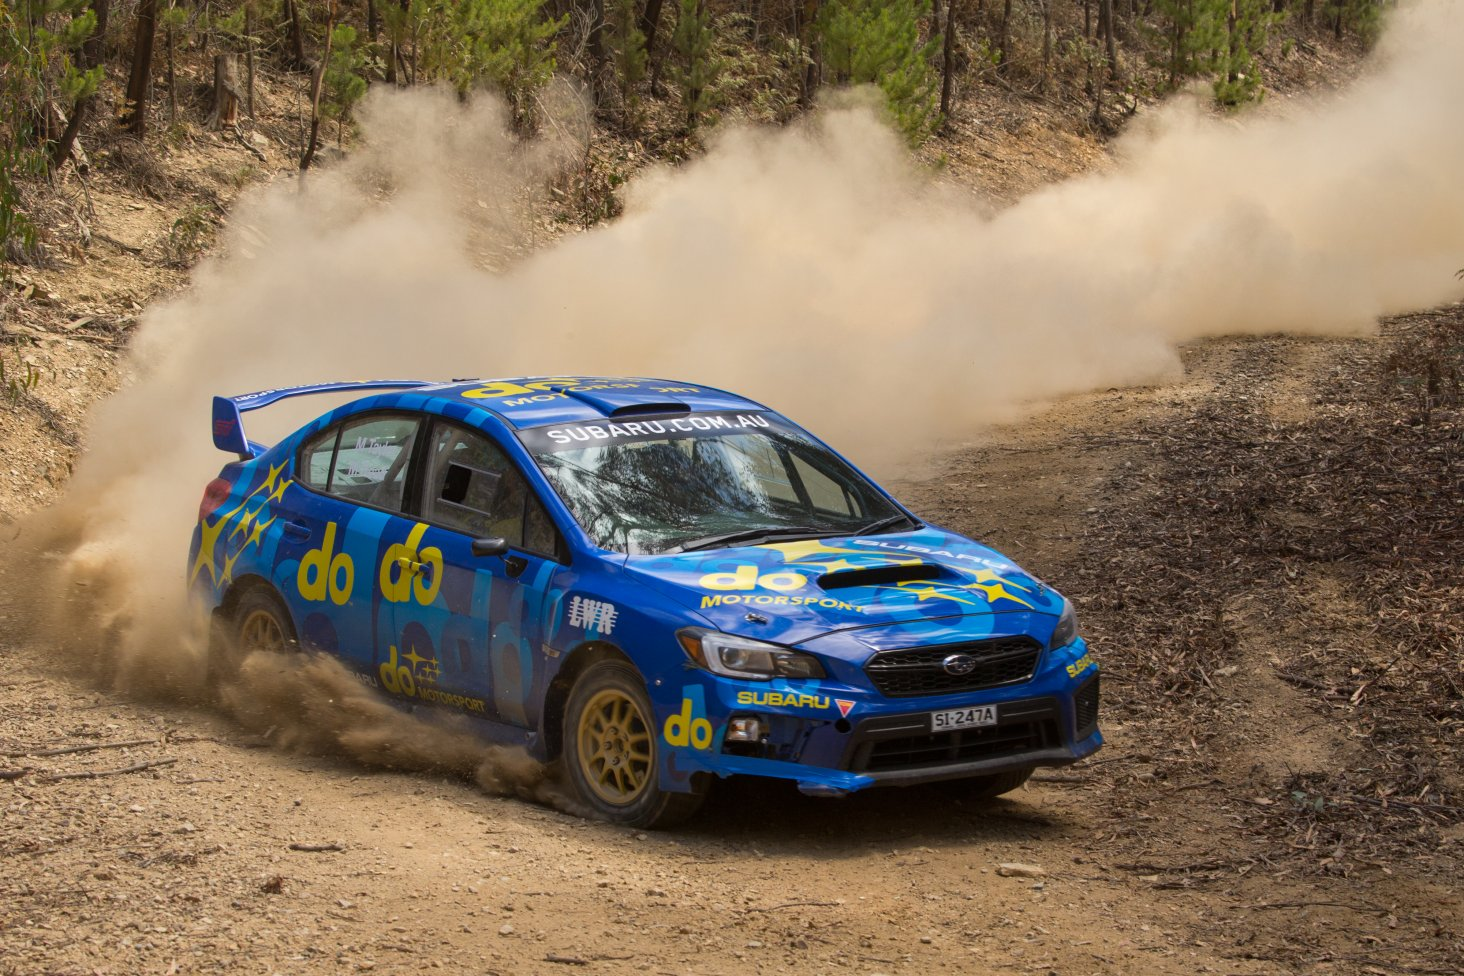 Subaru Australia will again compete with an All-Wheel Drive Production Rally Car class WRX STi, prepared by Les Walkden Rallying over the expanded six-round series.